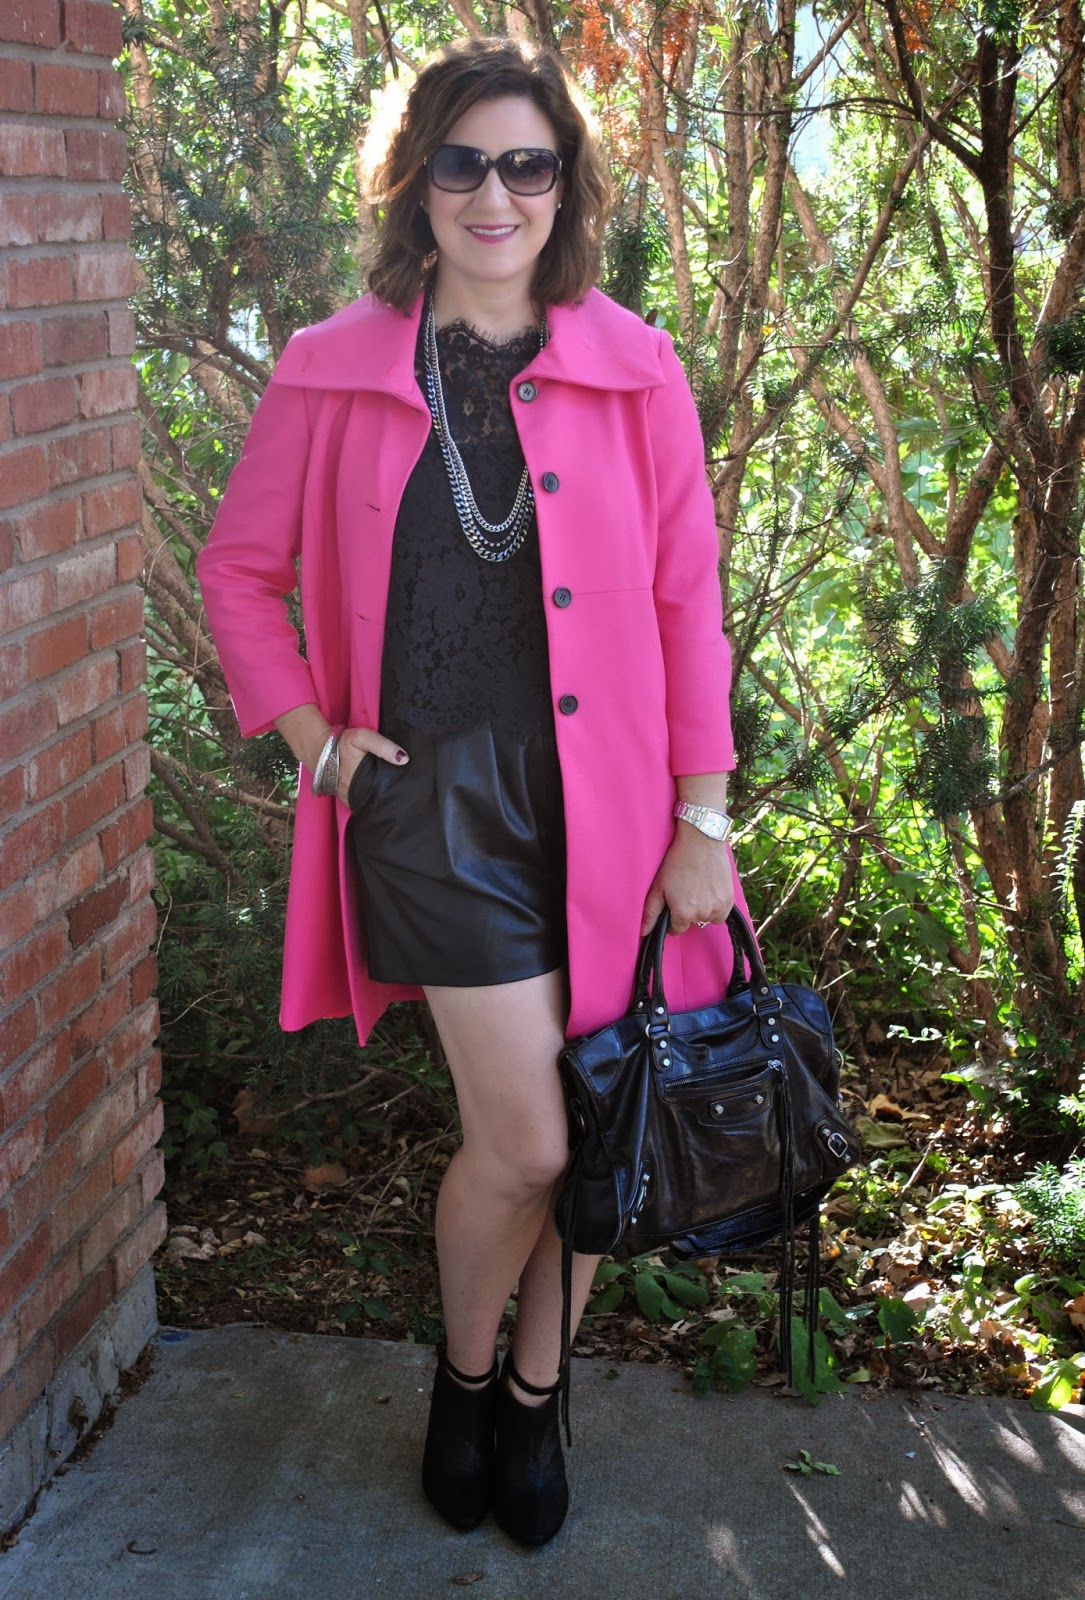 http://akstylemyway.blogspot.com/2013/10/rebecca-minkoff-booties-how-i-styled.html